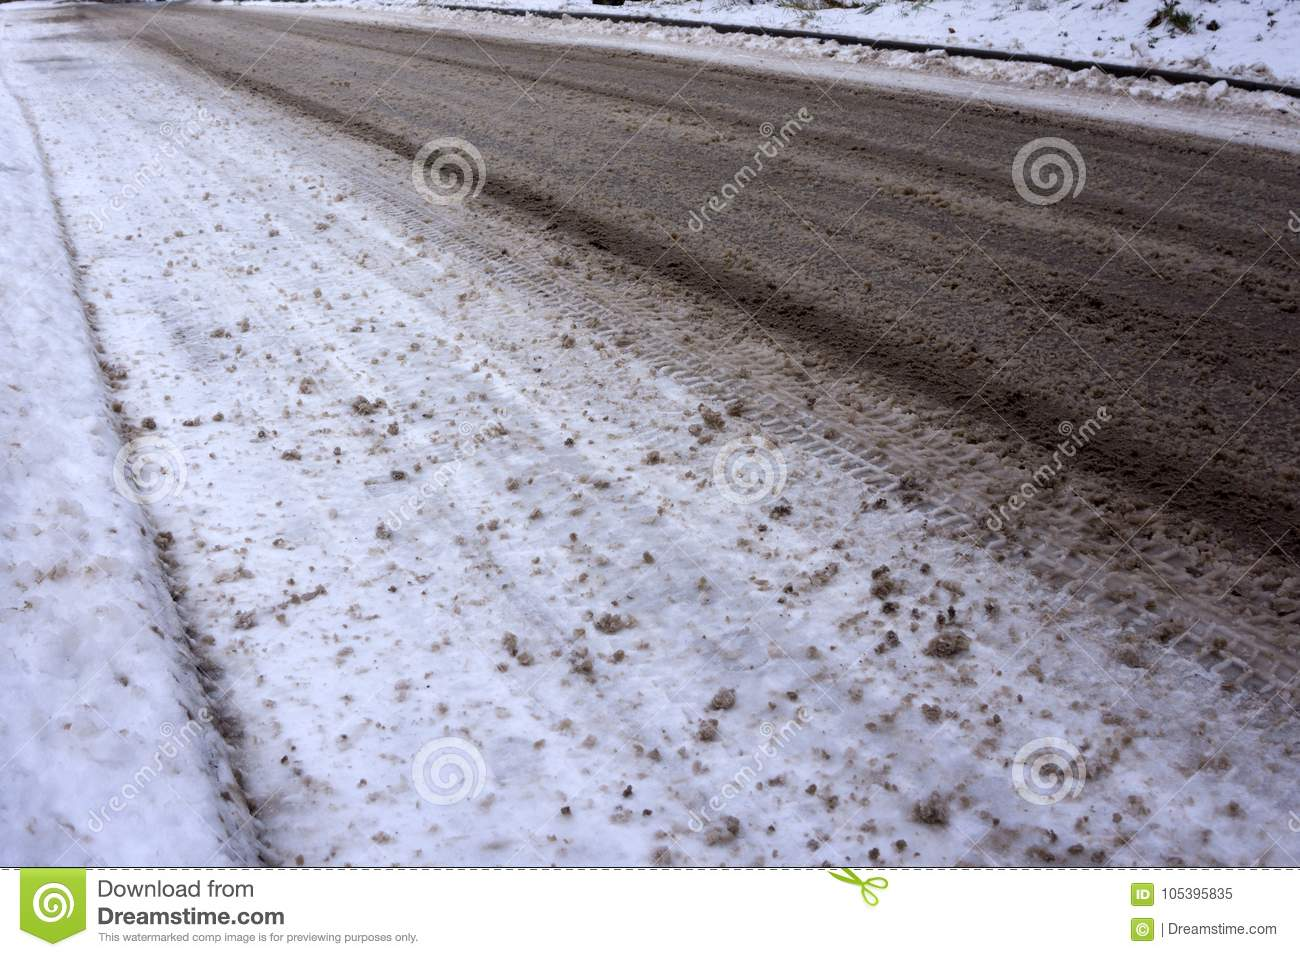 Download Icy Road In Winter Slush Dirt Stock Image - Image of background, blizzard: 105395835